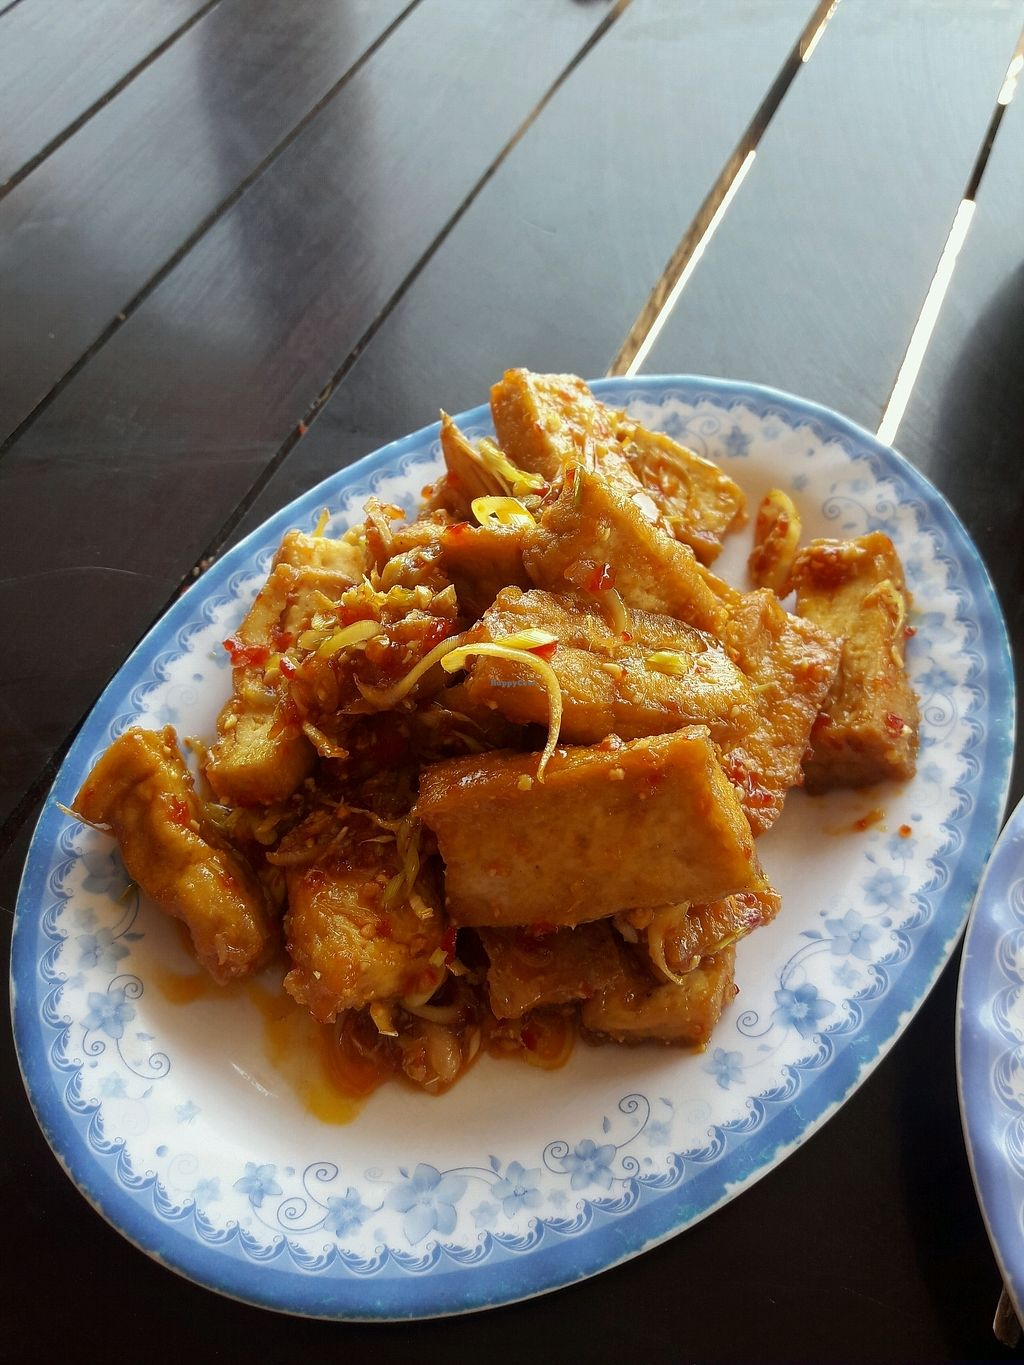 """Photo of Lam Tong Quan  by <a href=""""/members/profile/FineGiebler"""">FineGiebler</a> <br/>fried lemongrass tofu with chili <br/> February 3, 2018  - <a href='/contact/abuse/image/69812/354475'>Report</a>"""